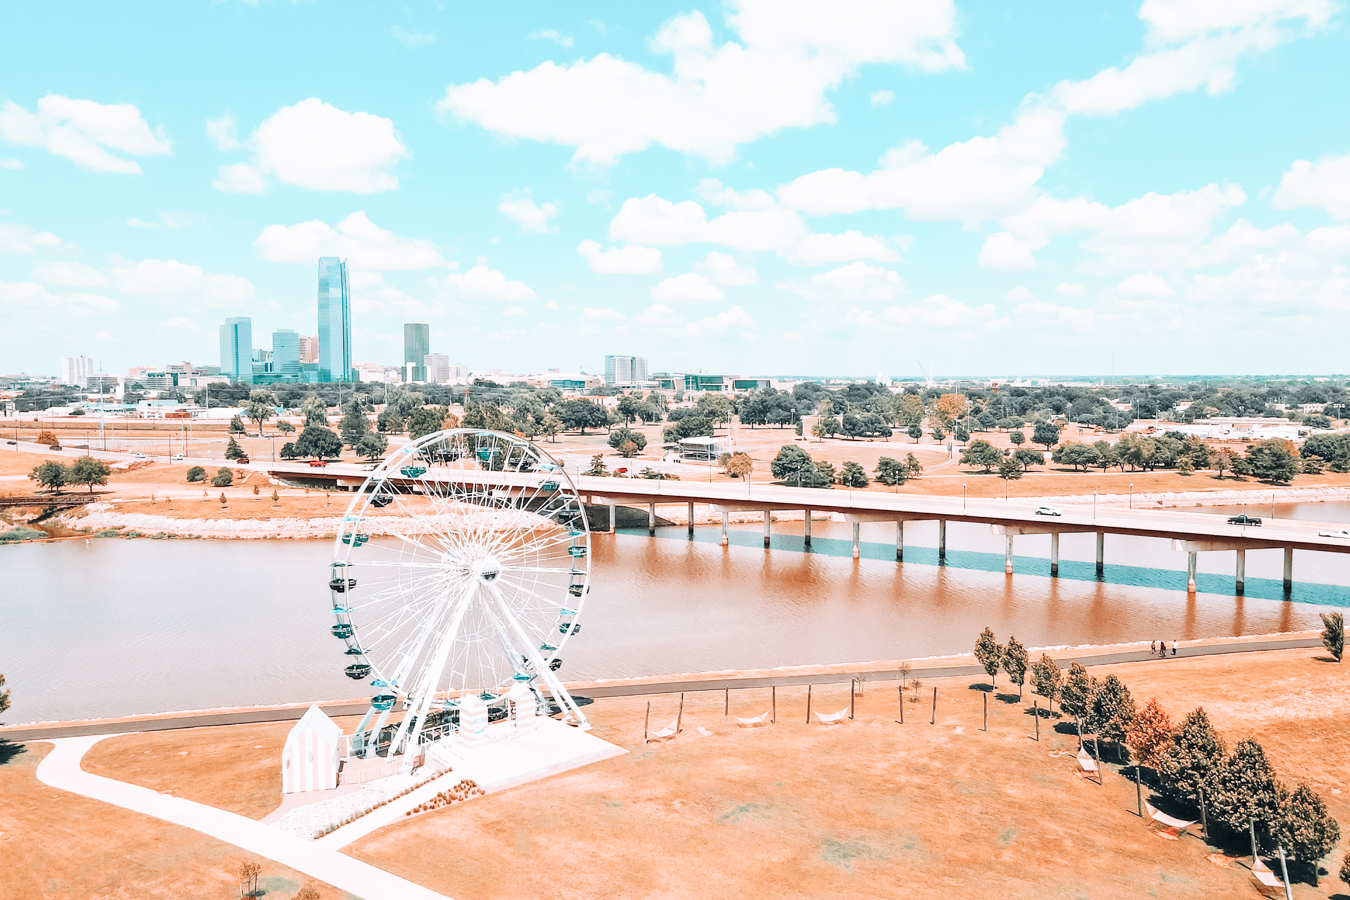 View of ferris wheel and buildings in Oklahoma City